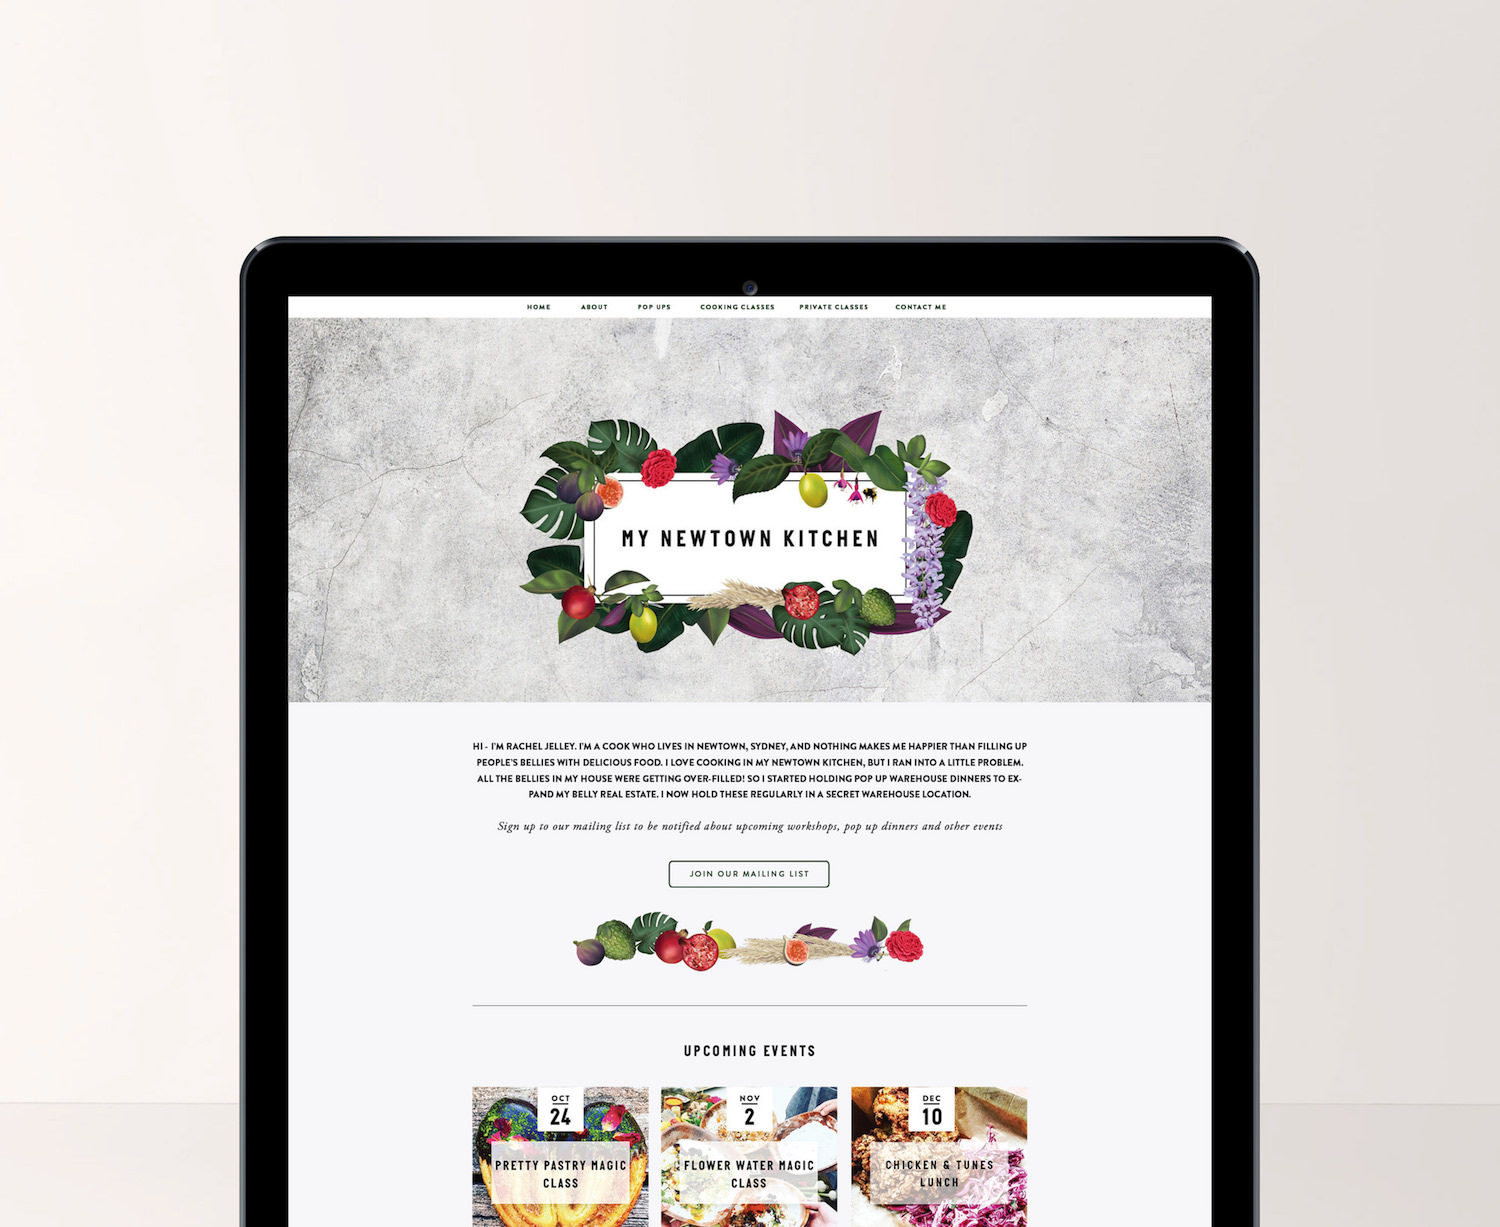 Jo-ChunYan-Graphic-Designer-My-Newtown-Kitchen-Responsive-Website.jpg